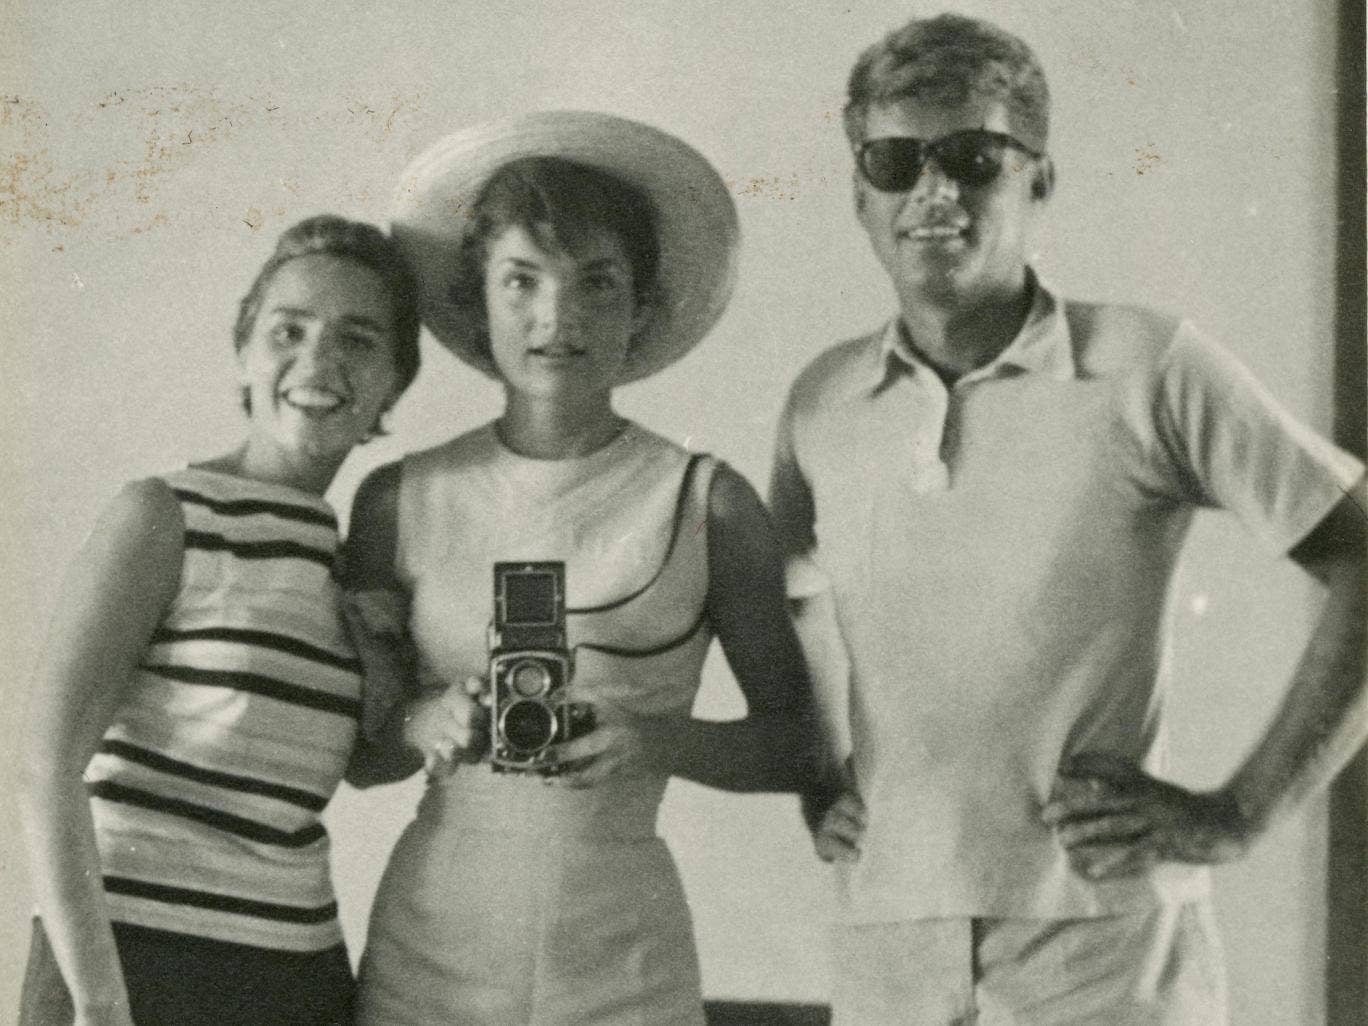 More than 2,000 photographs and other items belonged to David Powers, a close friend of Kennedy's